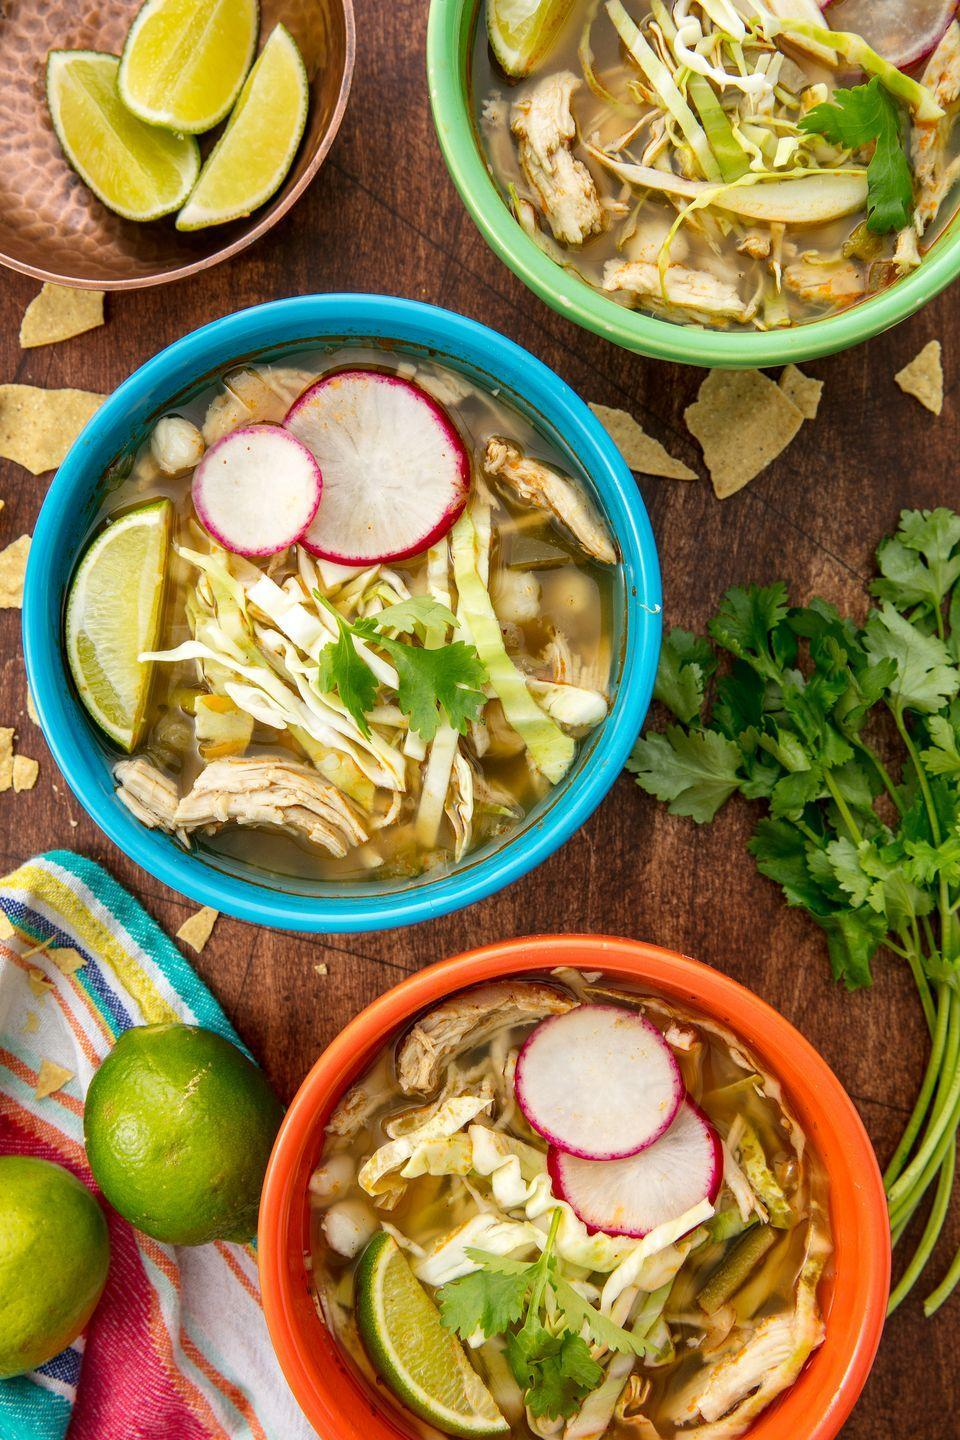 "<p>Enjoy the comfort of this Mexican favorite without any of the work.</p><p>Get the recipe from <a href=""https://www.delish.com/cooking/recipe-ideas/recipes/a55758/crock-pot-mexican-posole-recipe/"" rel=""nofollow noopener"" target=""_blank"" data-ylk=""slk:Delish"" class=""link rapid-noclick-resp"">Delish</a>. </p>"